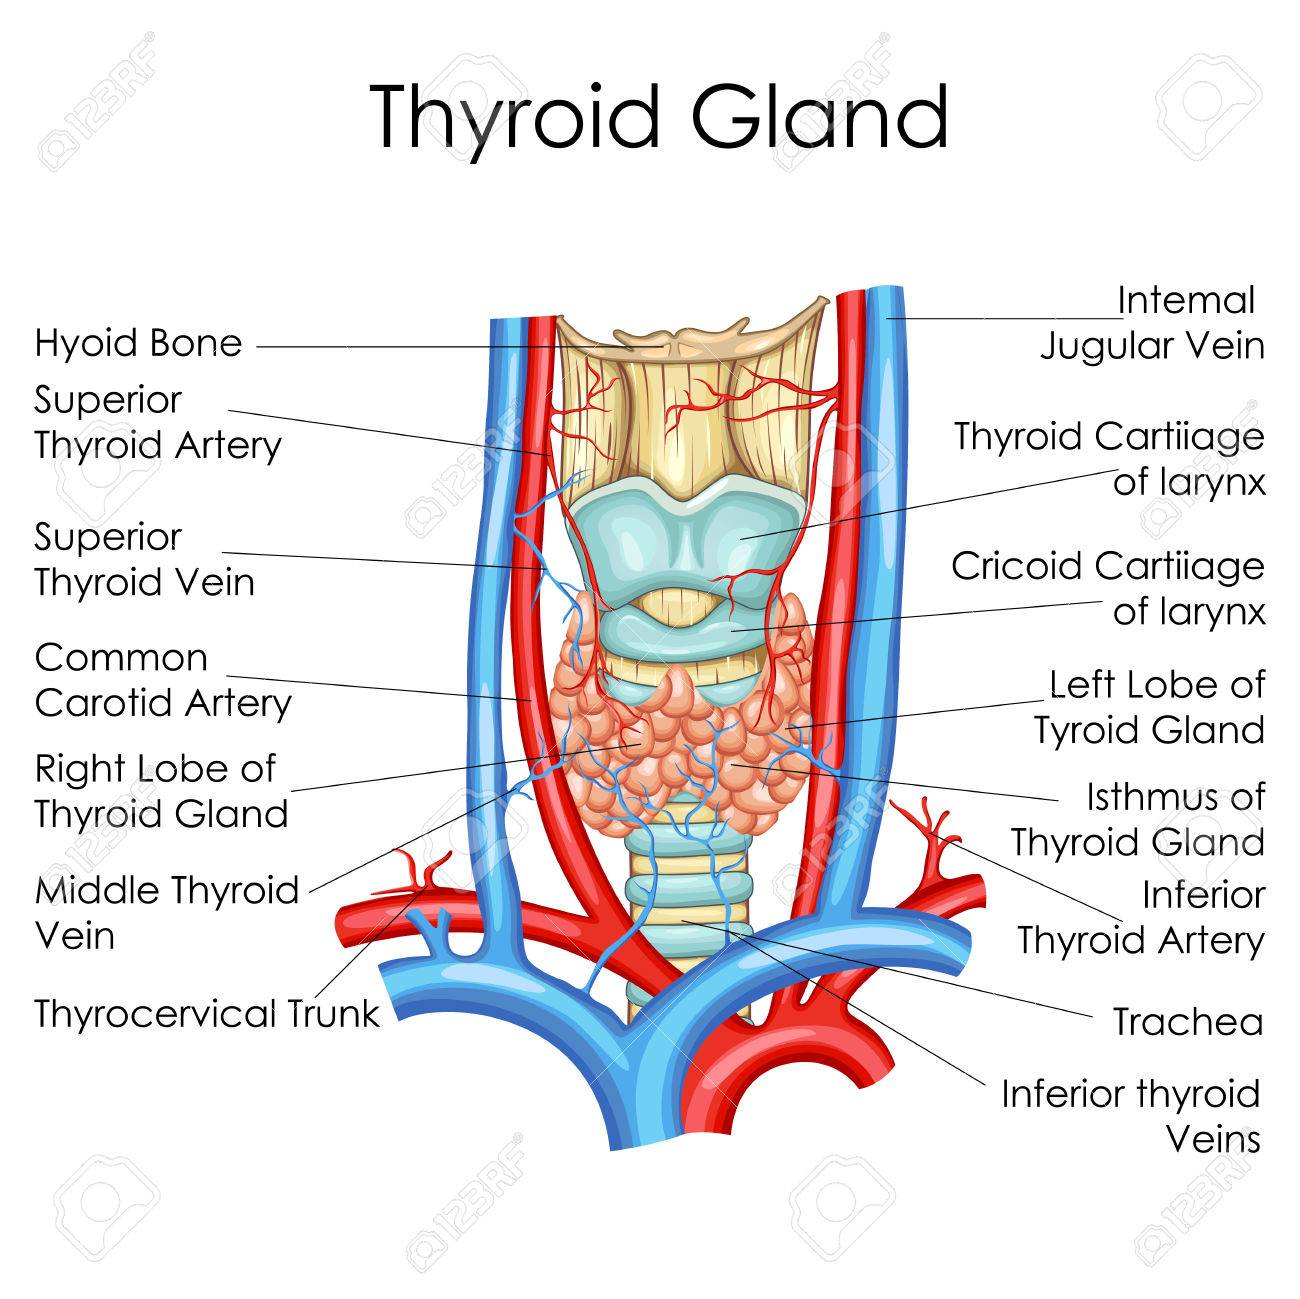 hight resolution of medical education chart of biology for thyroid gland diagram vector illustration stock vector 79651713